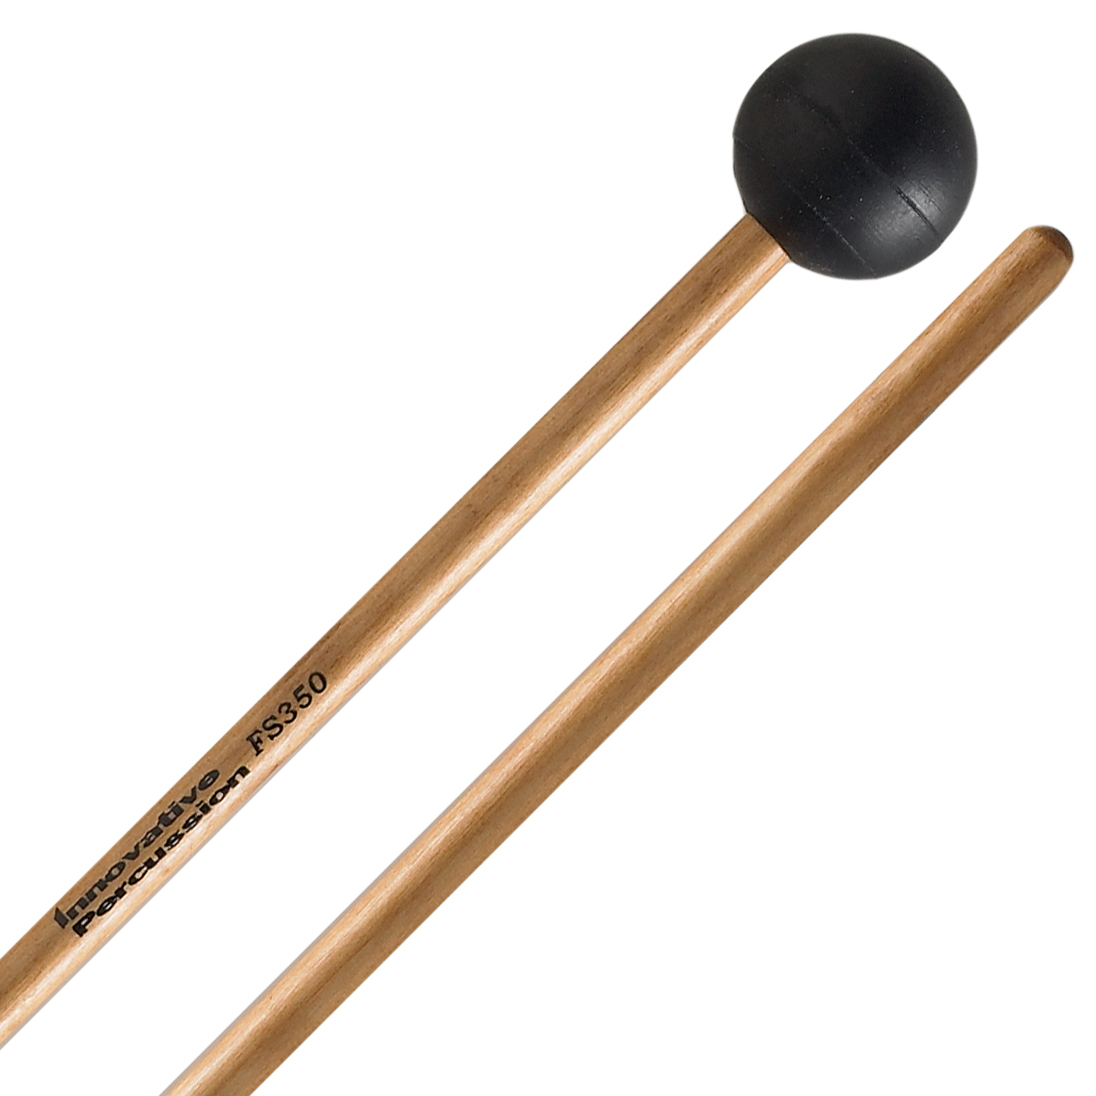 Innovative Percussion FS350 Field Series Very Hard Marimba Mallets with Birch Shafts